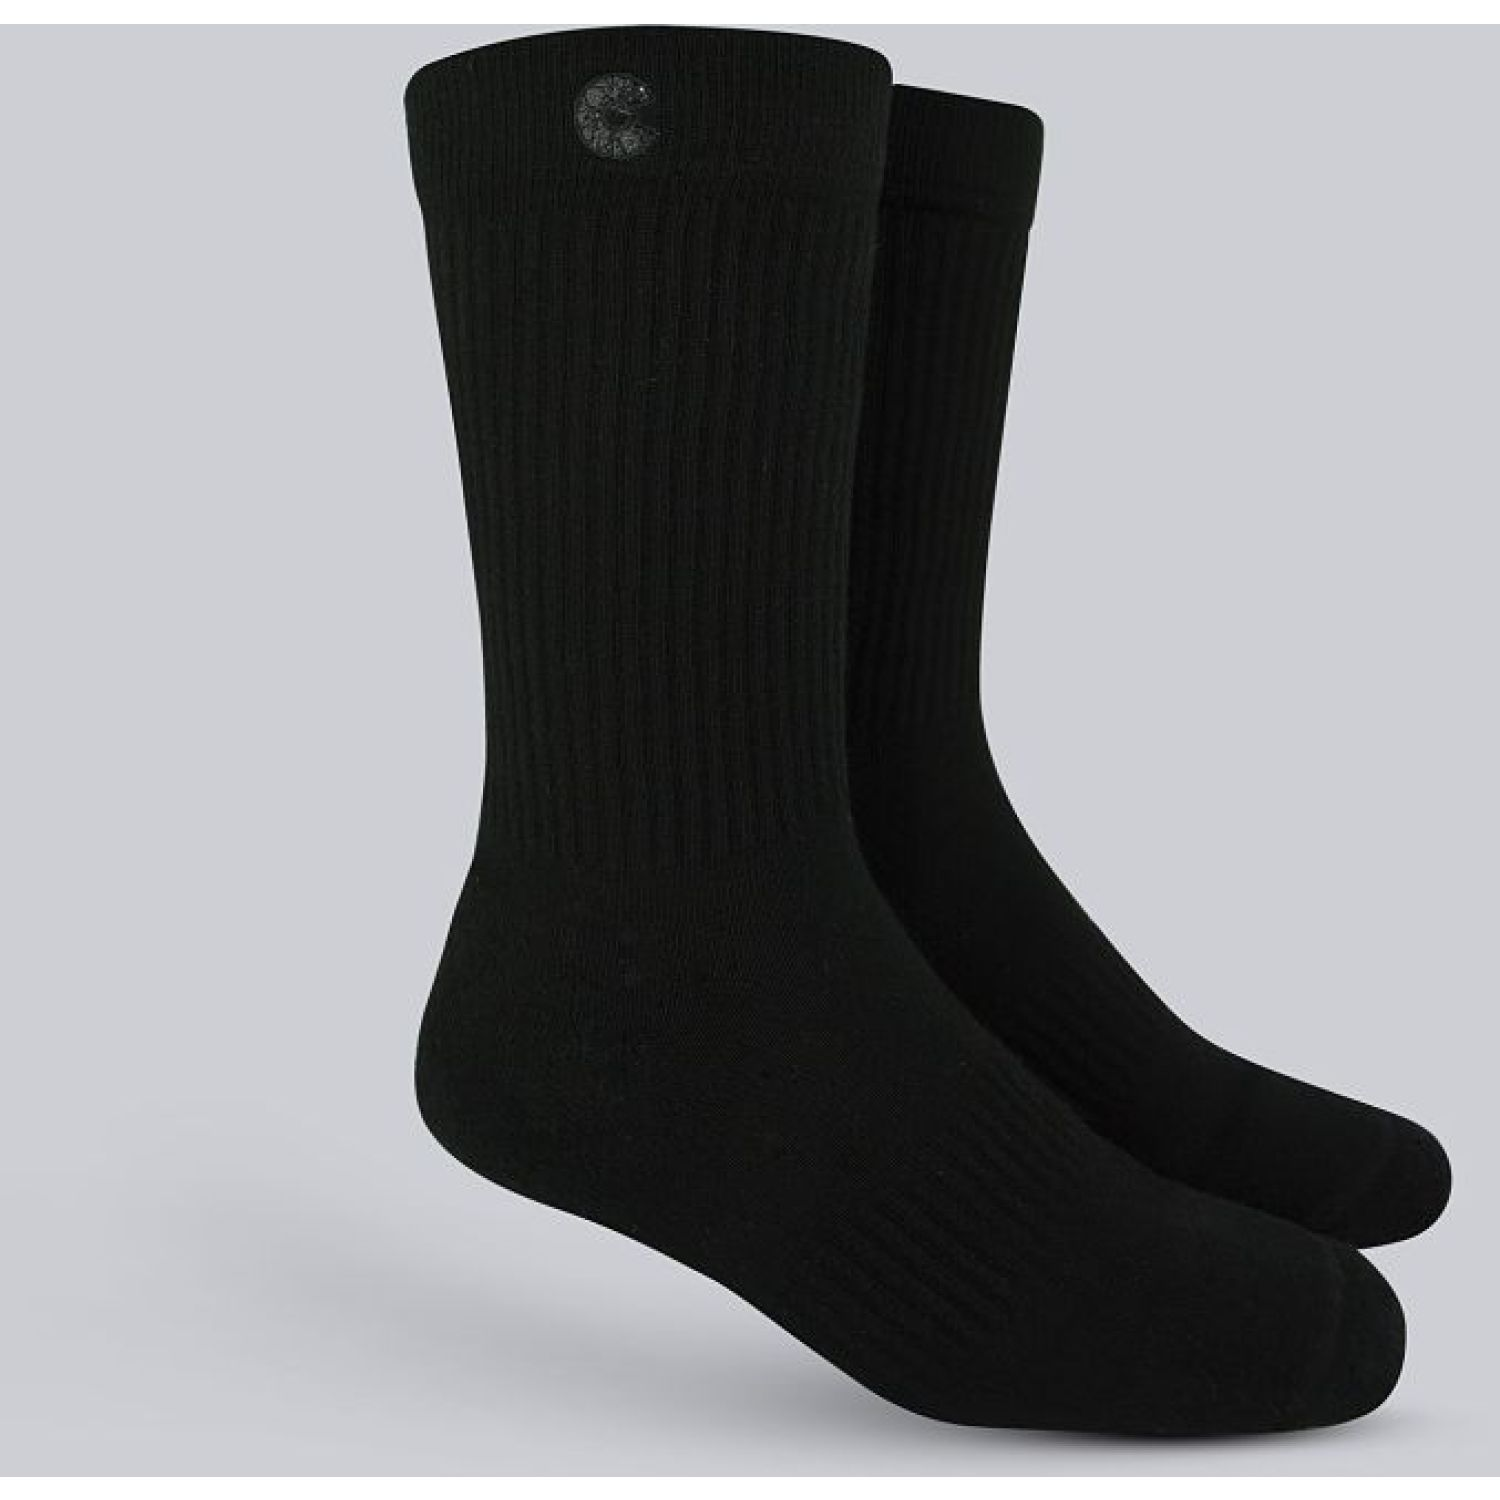 Cheese Socks Crew Full Black Negro Calcetines